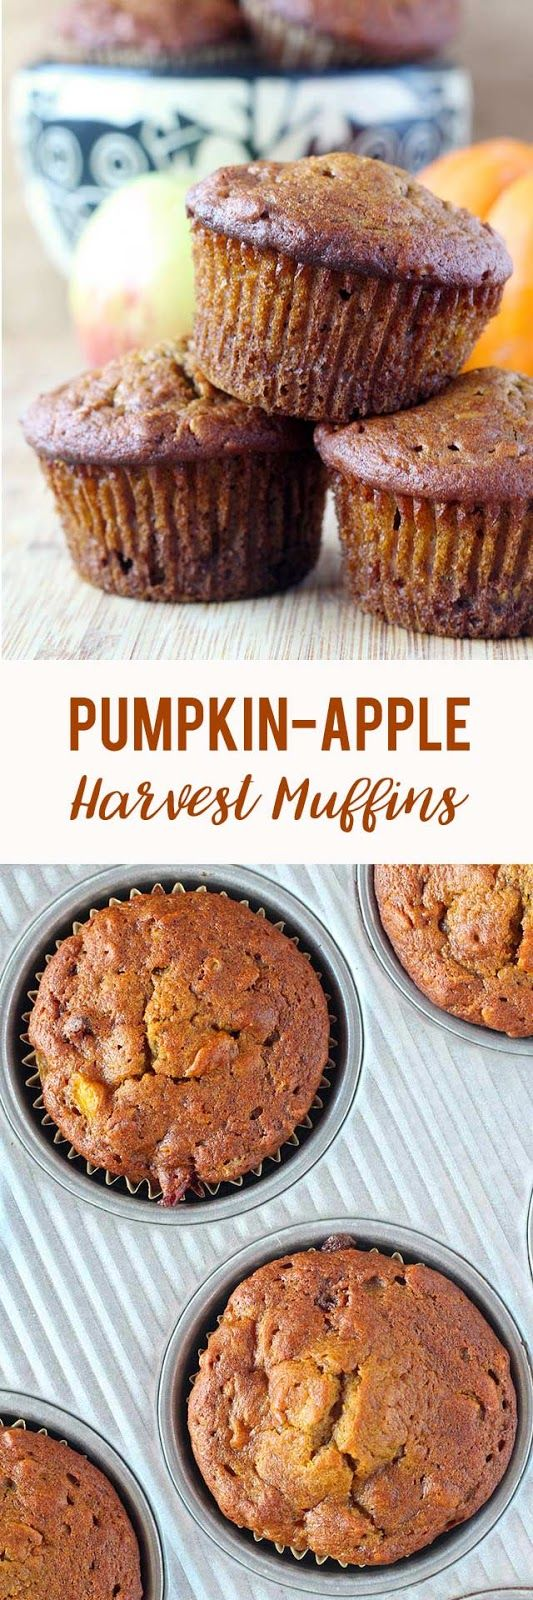 Pumpkin Apple Harvest Muffins #pumpkinmuffins